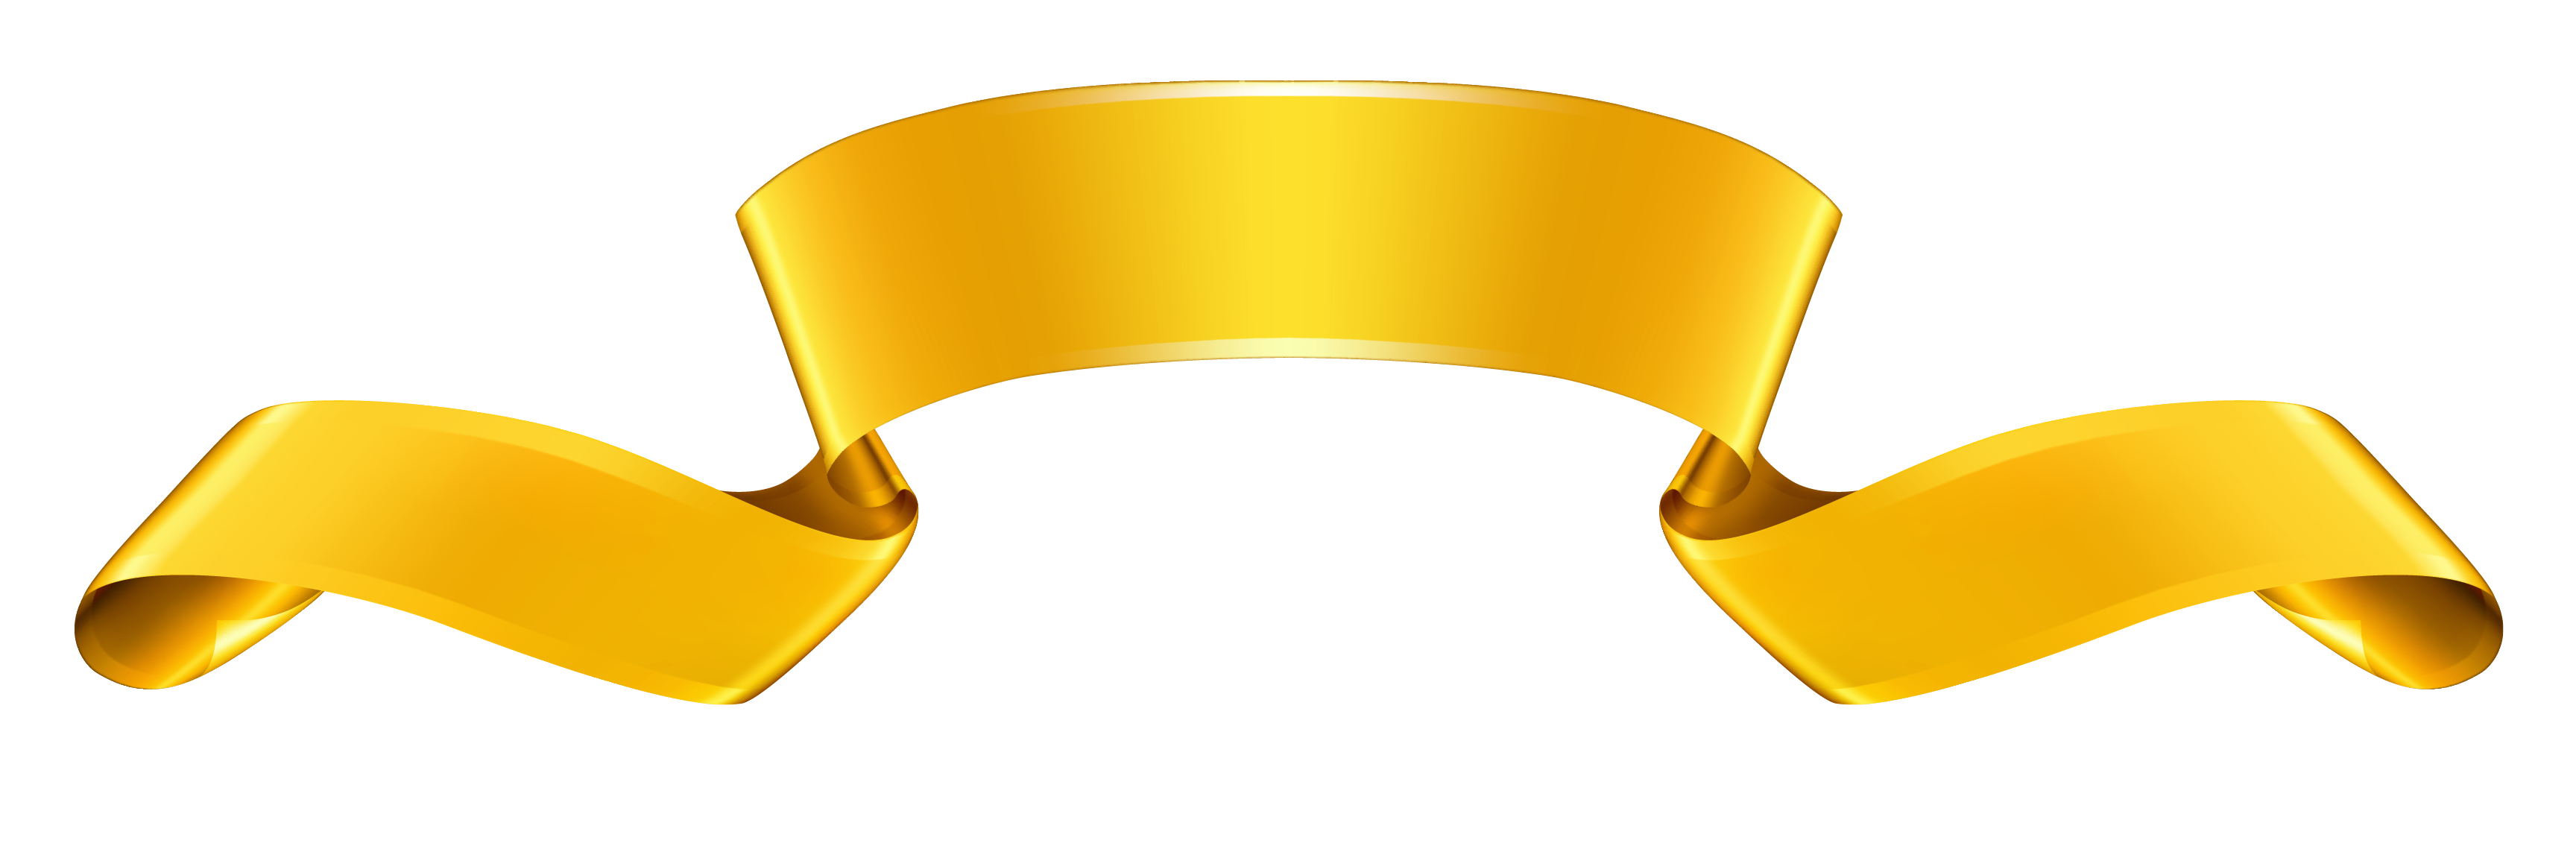 Dust clipart gold. Ribbon banner